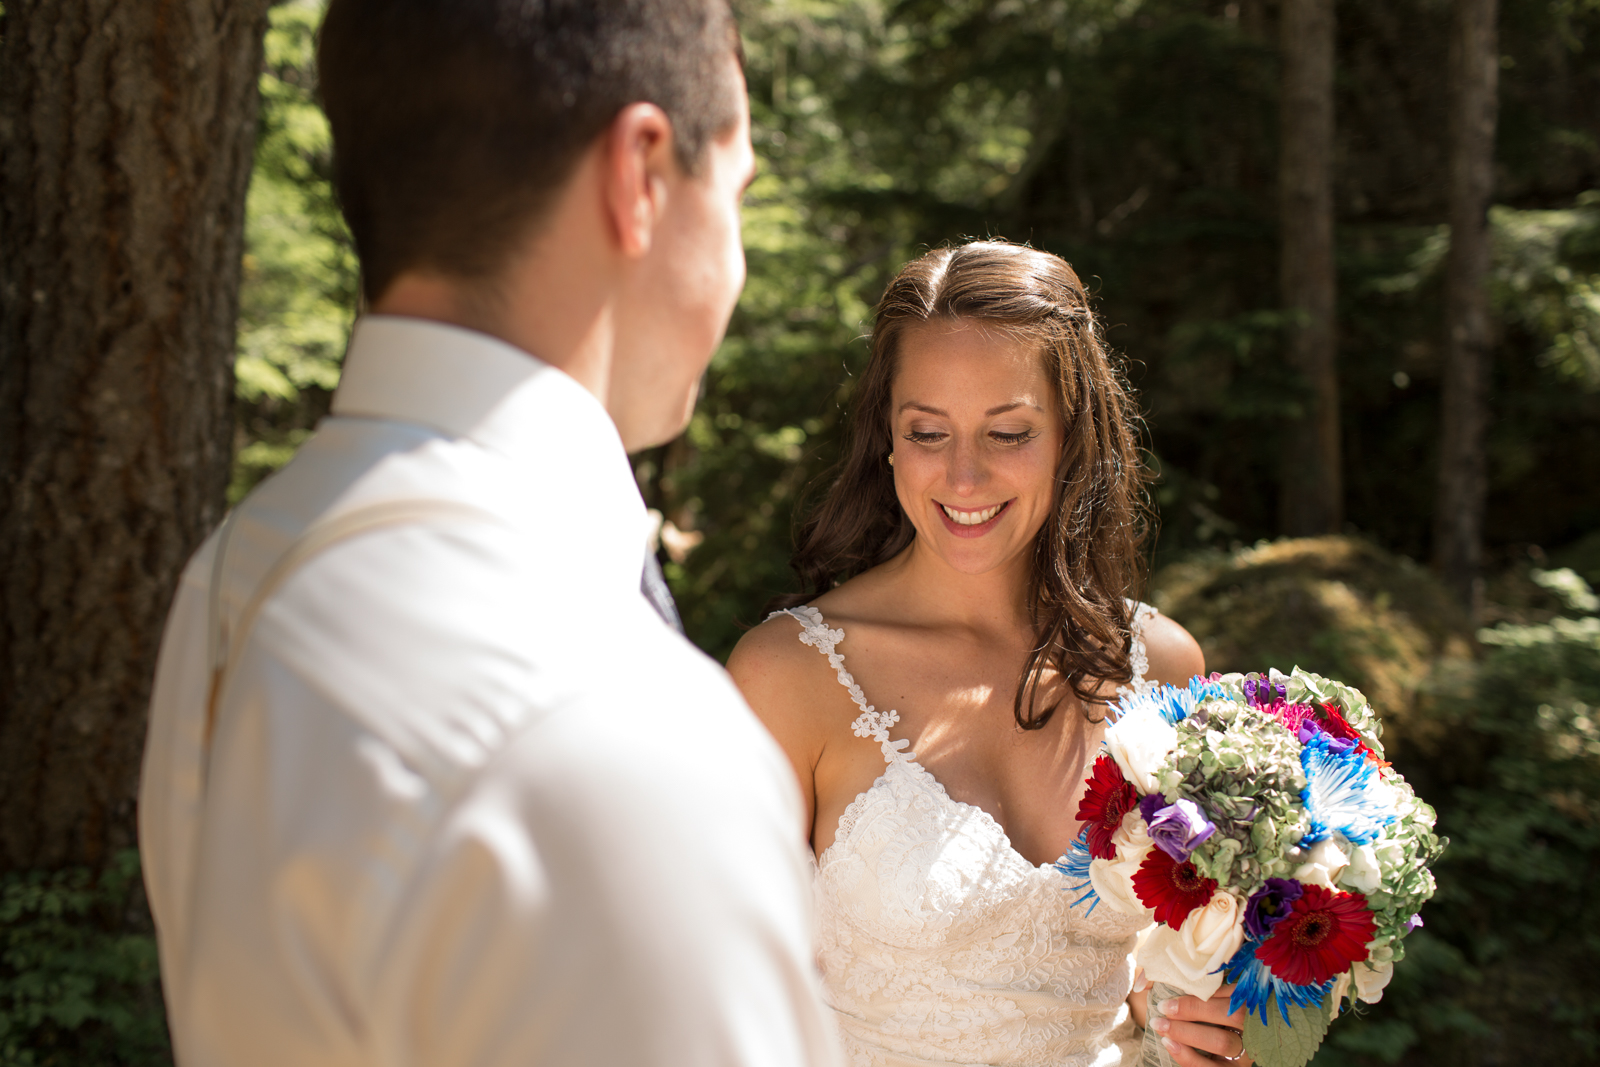 44Andrew_Pavlidis_Photography_Jess_and_Tristan_Revelstoke_Elopement_Calgary_Wedding_Photographer-8040